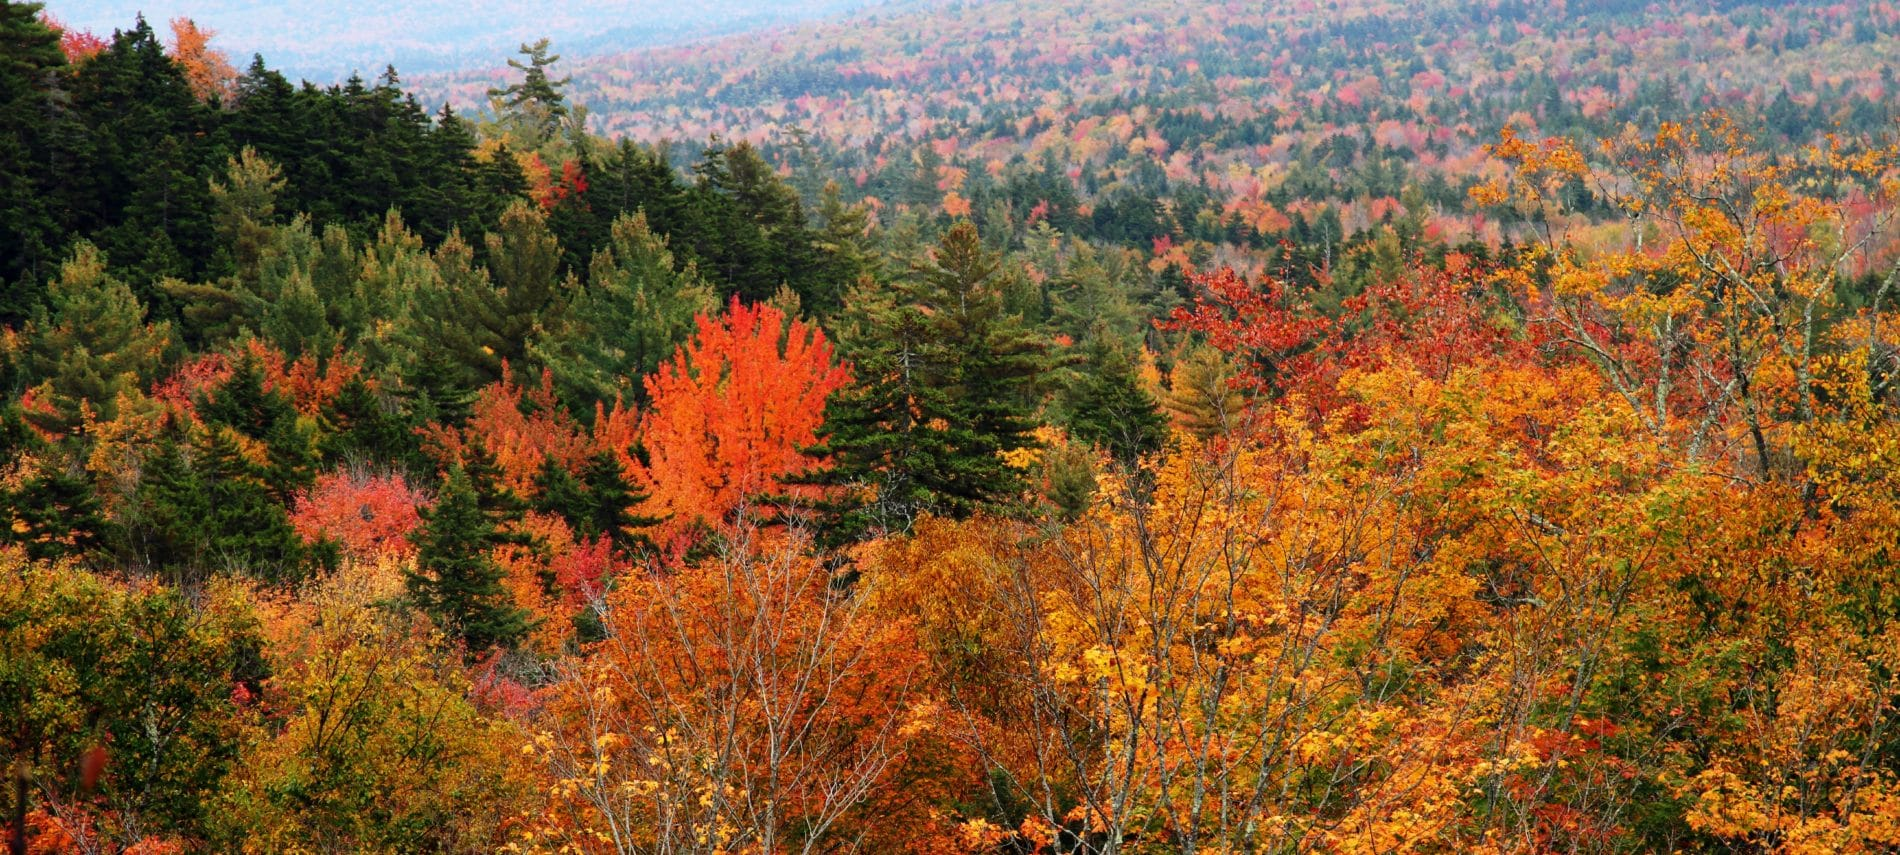 colorful fall leaves in the mountains of new hampshire